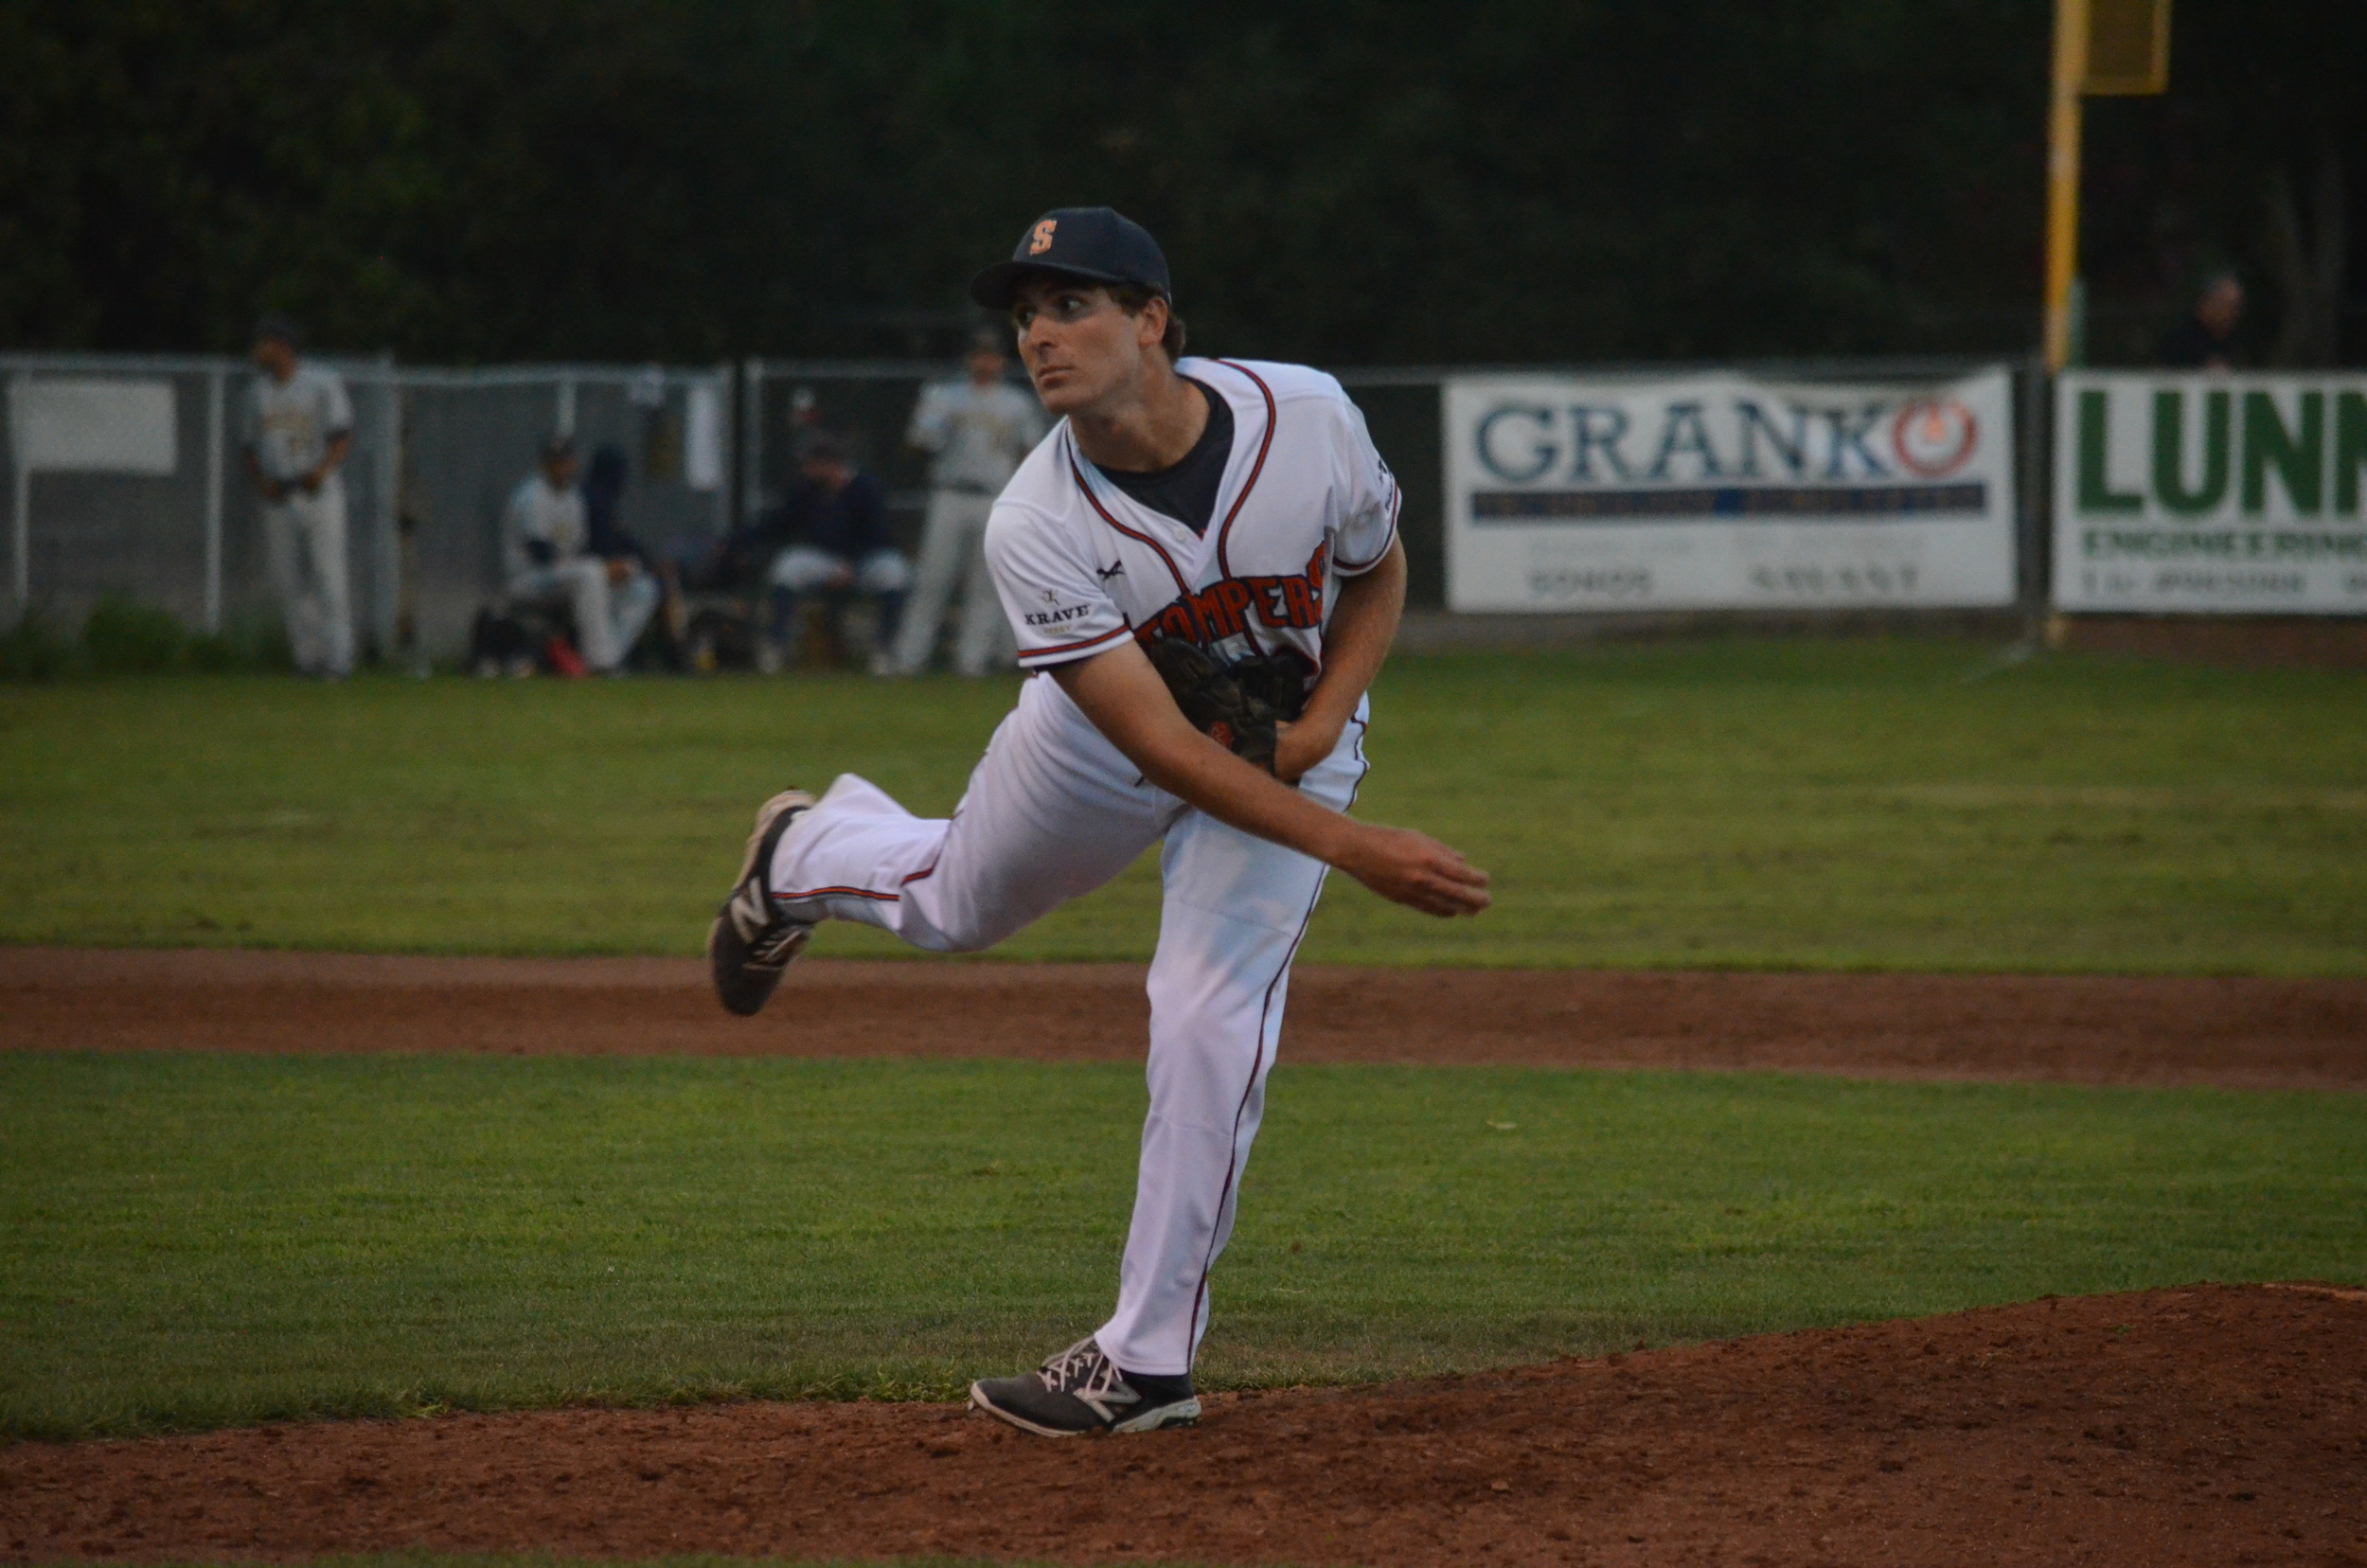 Sean Conroy will return to the Sonoma Stompers for the 2016 season. Last season, he was named the Pacific Association's top reliever,and was recognized by the league as its top defensive pitcher during his rookie season.   James Toy III/Sonoma Stompers